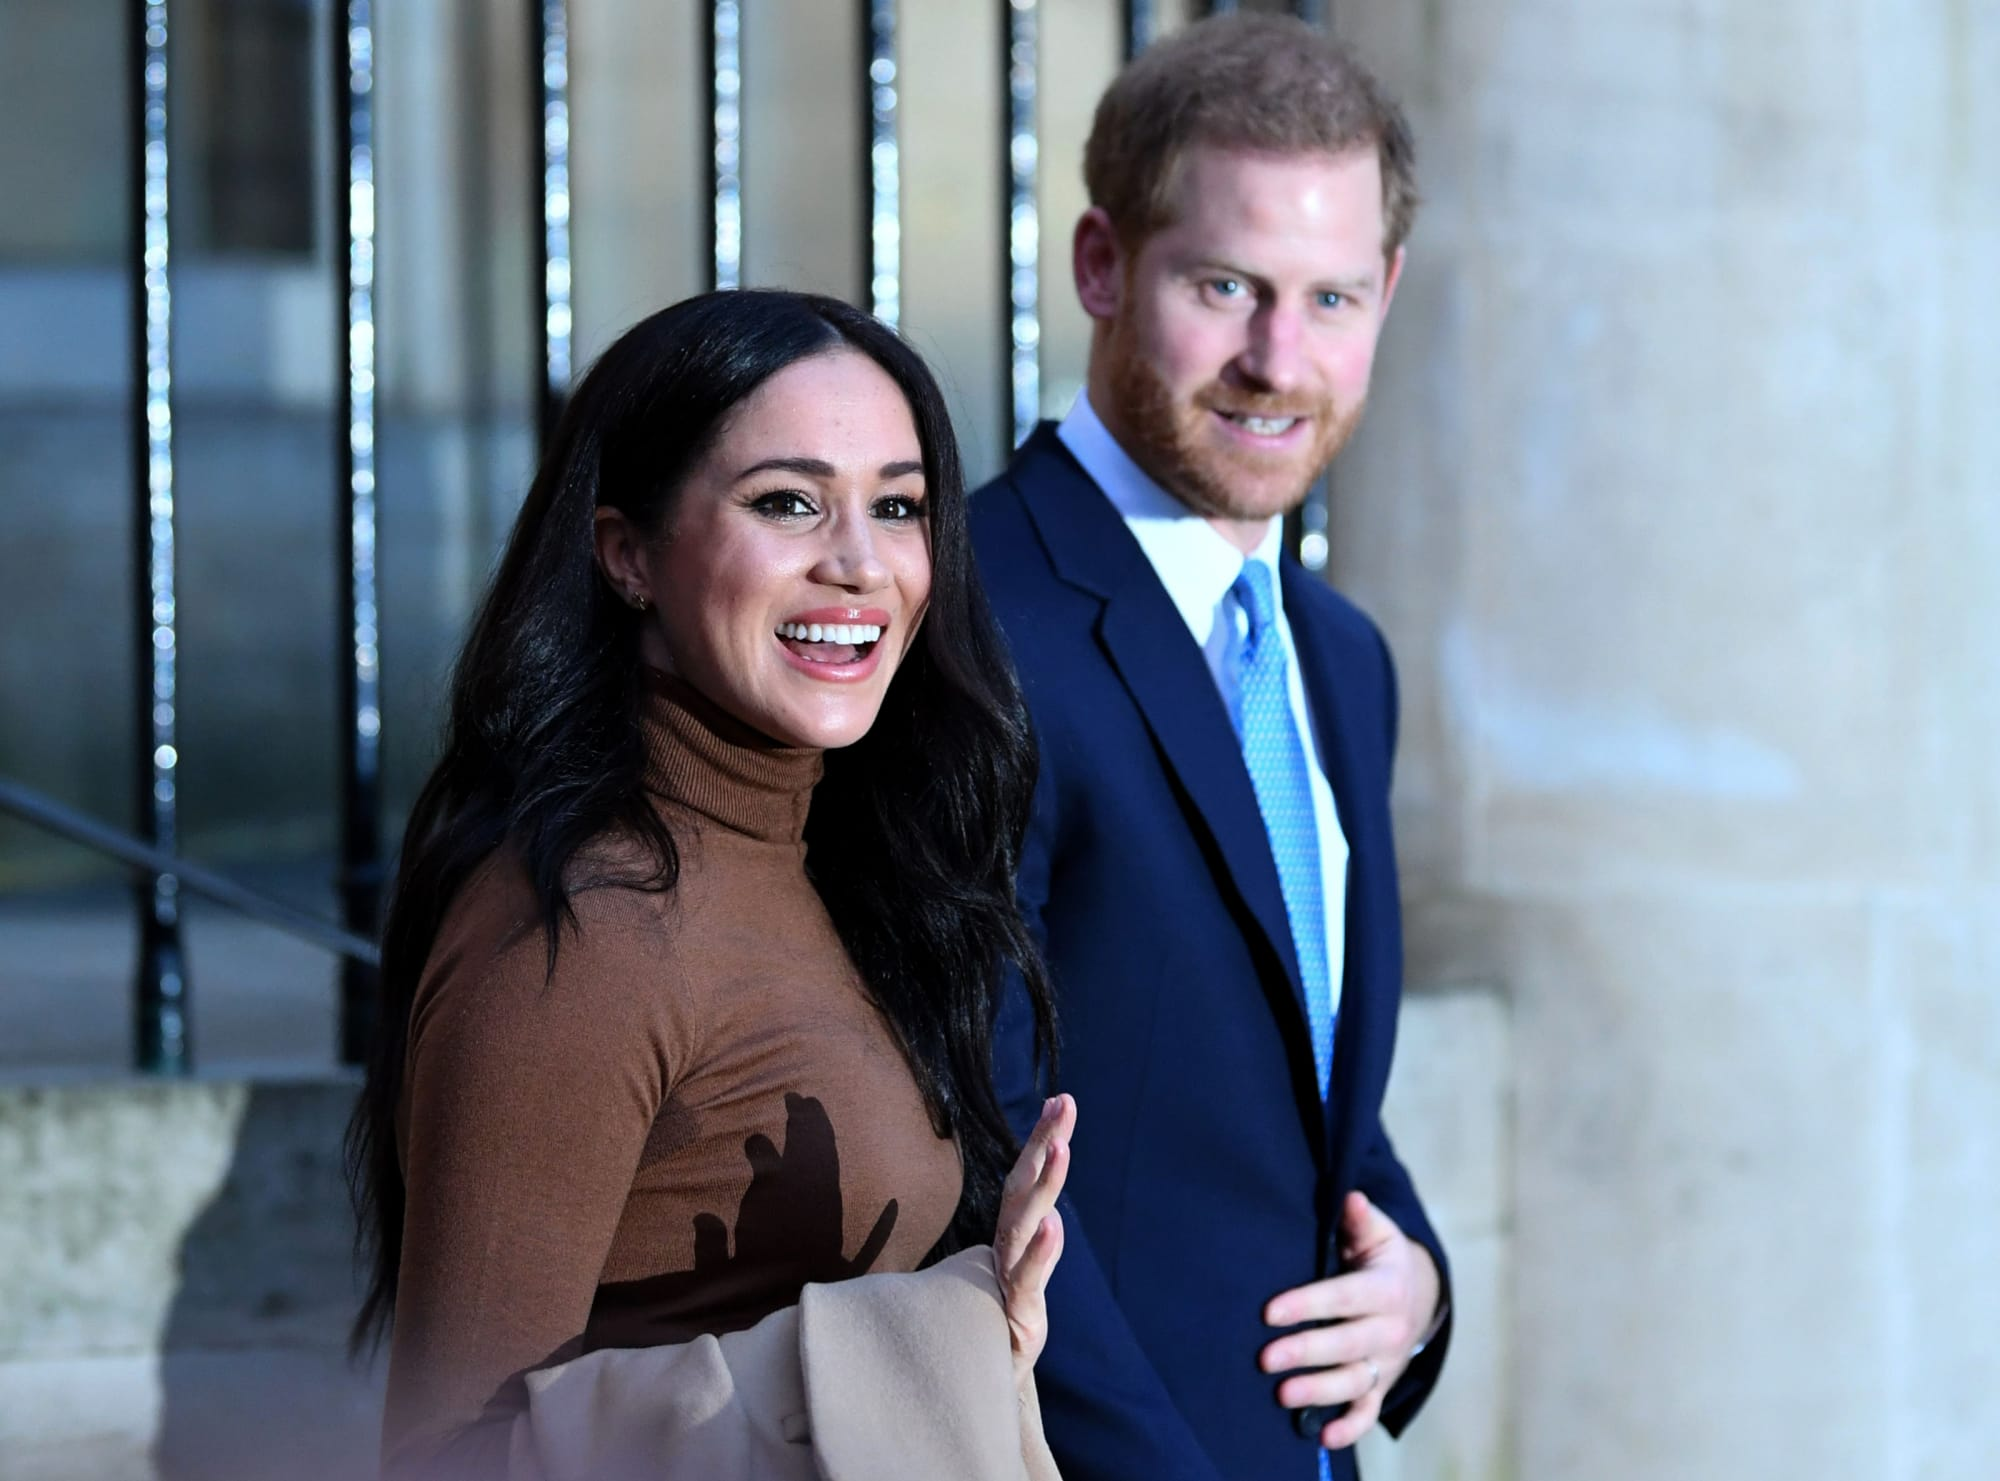 Did you really think Meghan Markle and Prince Harry offended the Queen by naming newborn daughter Lilibet?